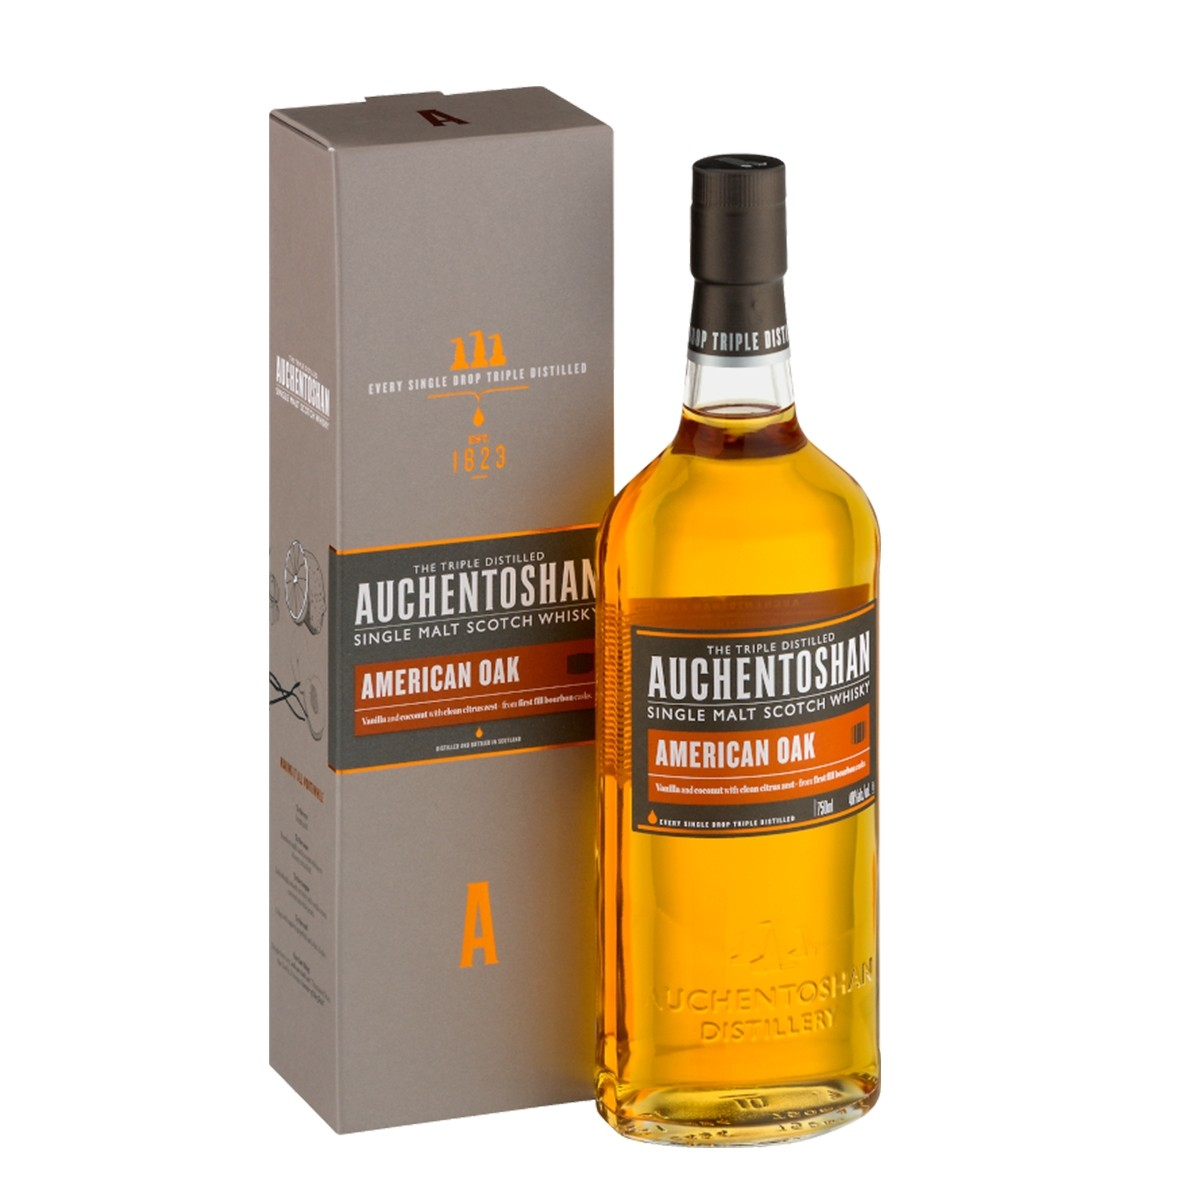 Auchentosan American Oak 700 ml